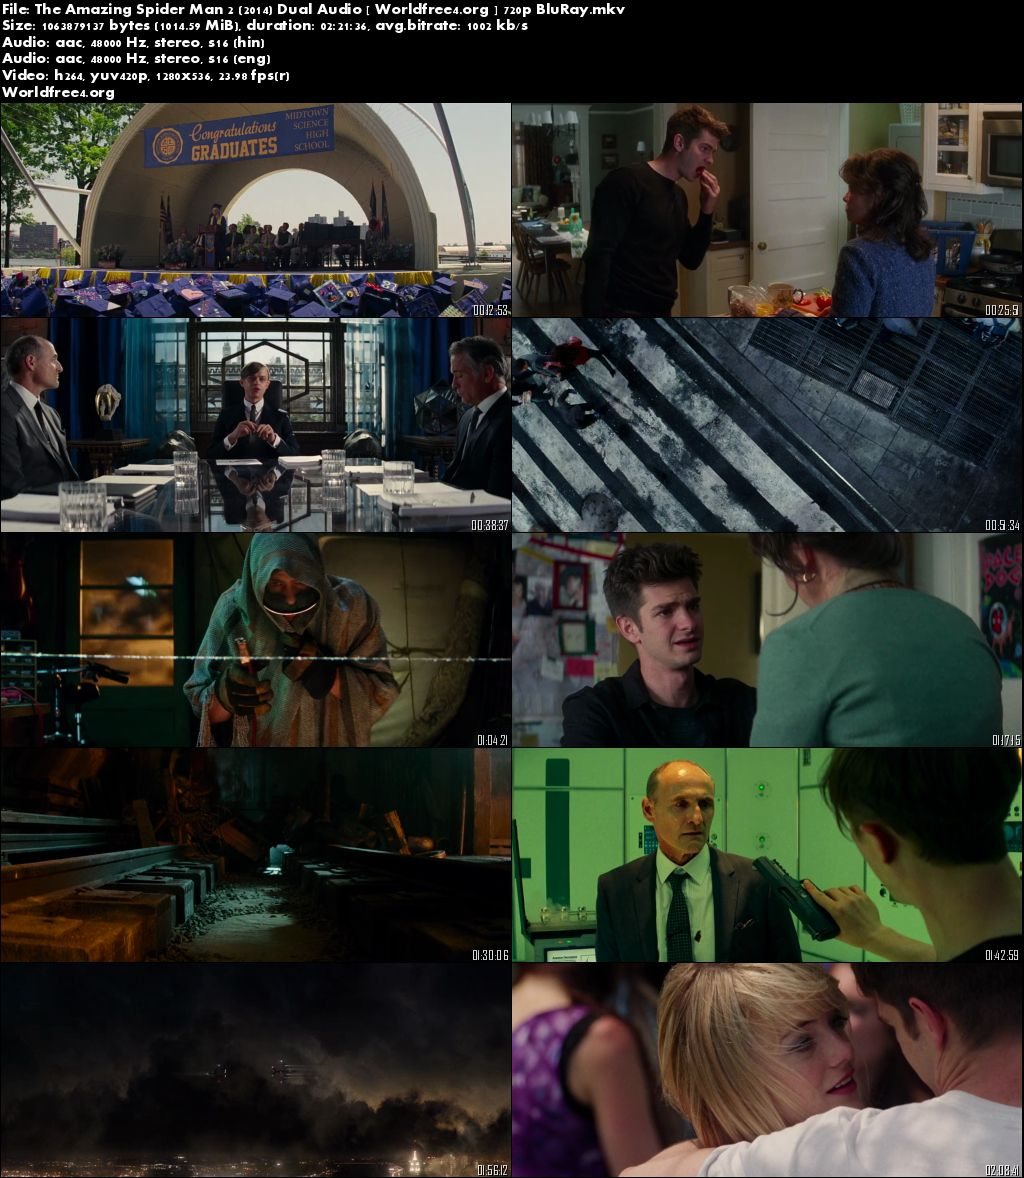 The Amazing Spider Man 2 (2014) BluRay Download Dual Audio 720p